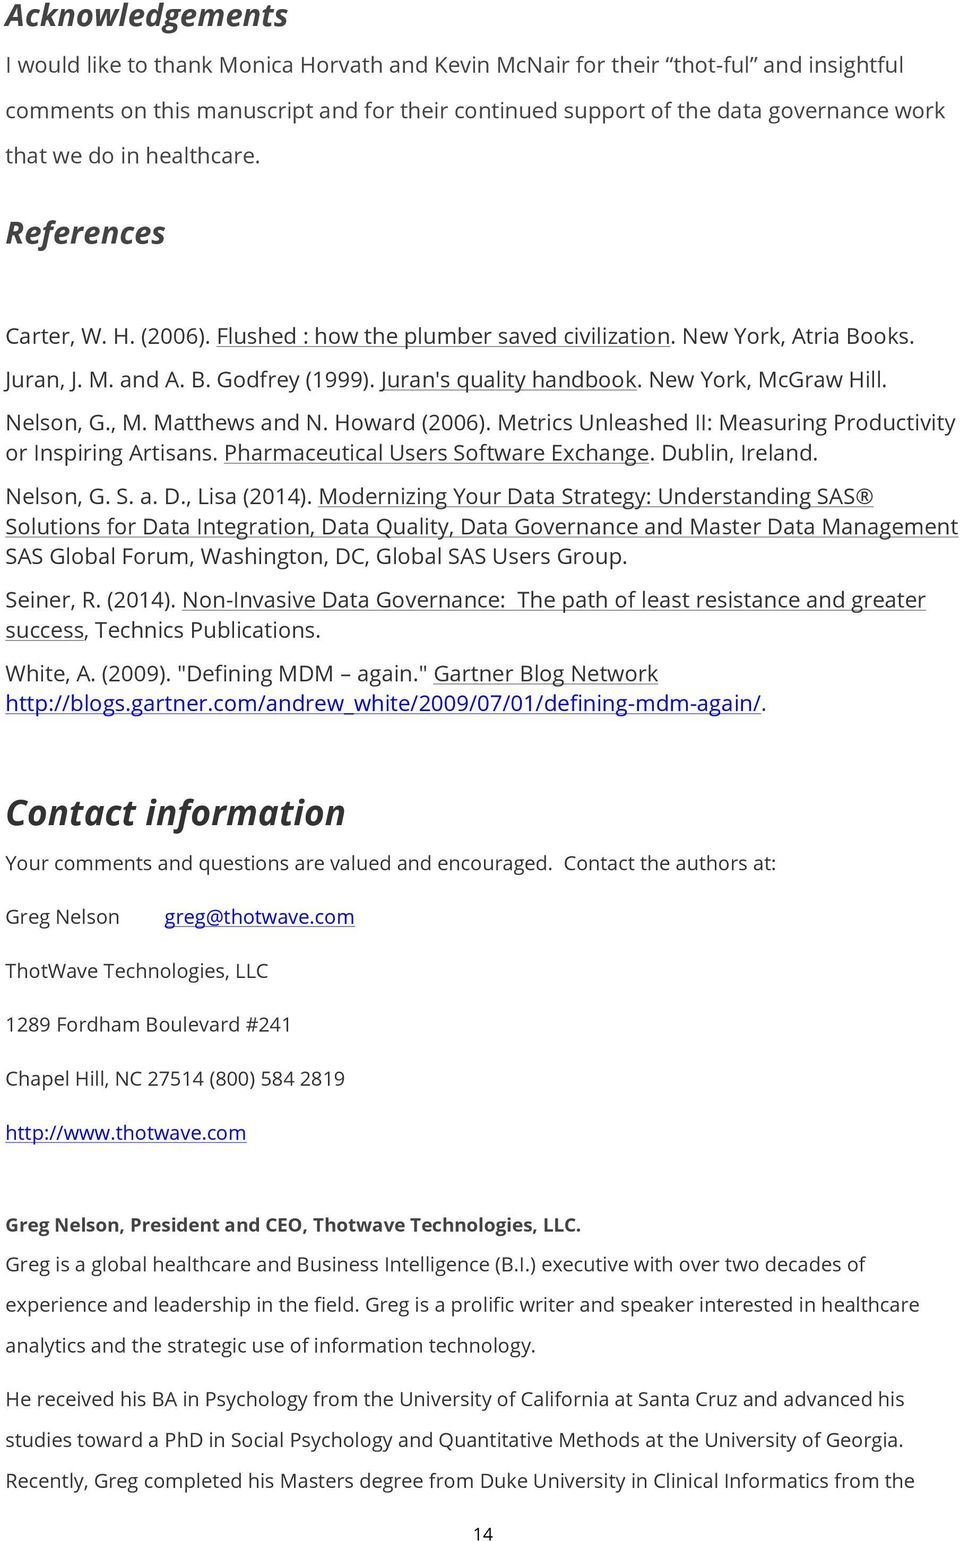 New York, McGraw Hill. Nelson, G., M. Matthews and N. Howard (2006). Metrics Unleashed II: Measuring Productivity or Inspiring Artisans. Pharmaceutical Users Software Exchange. Dublin, Ireland.